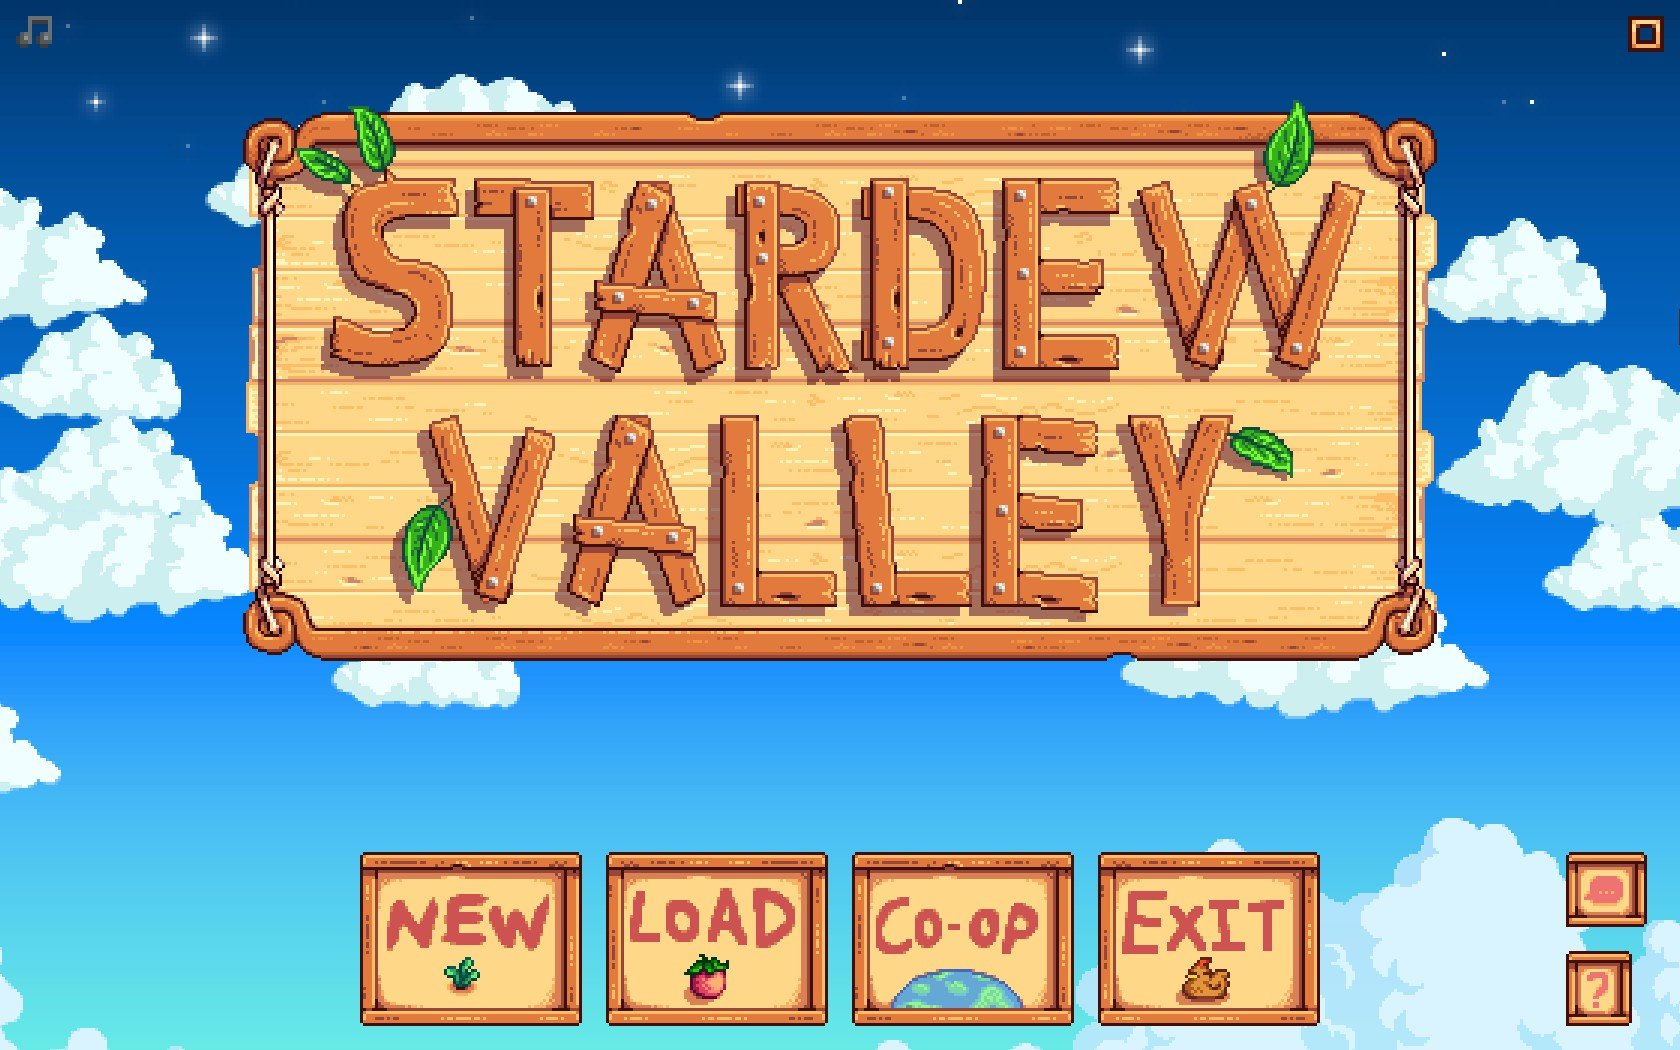 Stardew Valley Multiplayer Beta New Features And Content